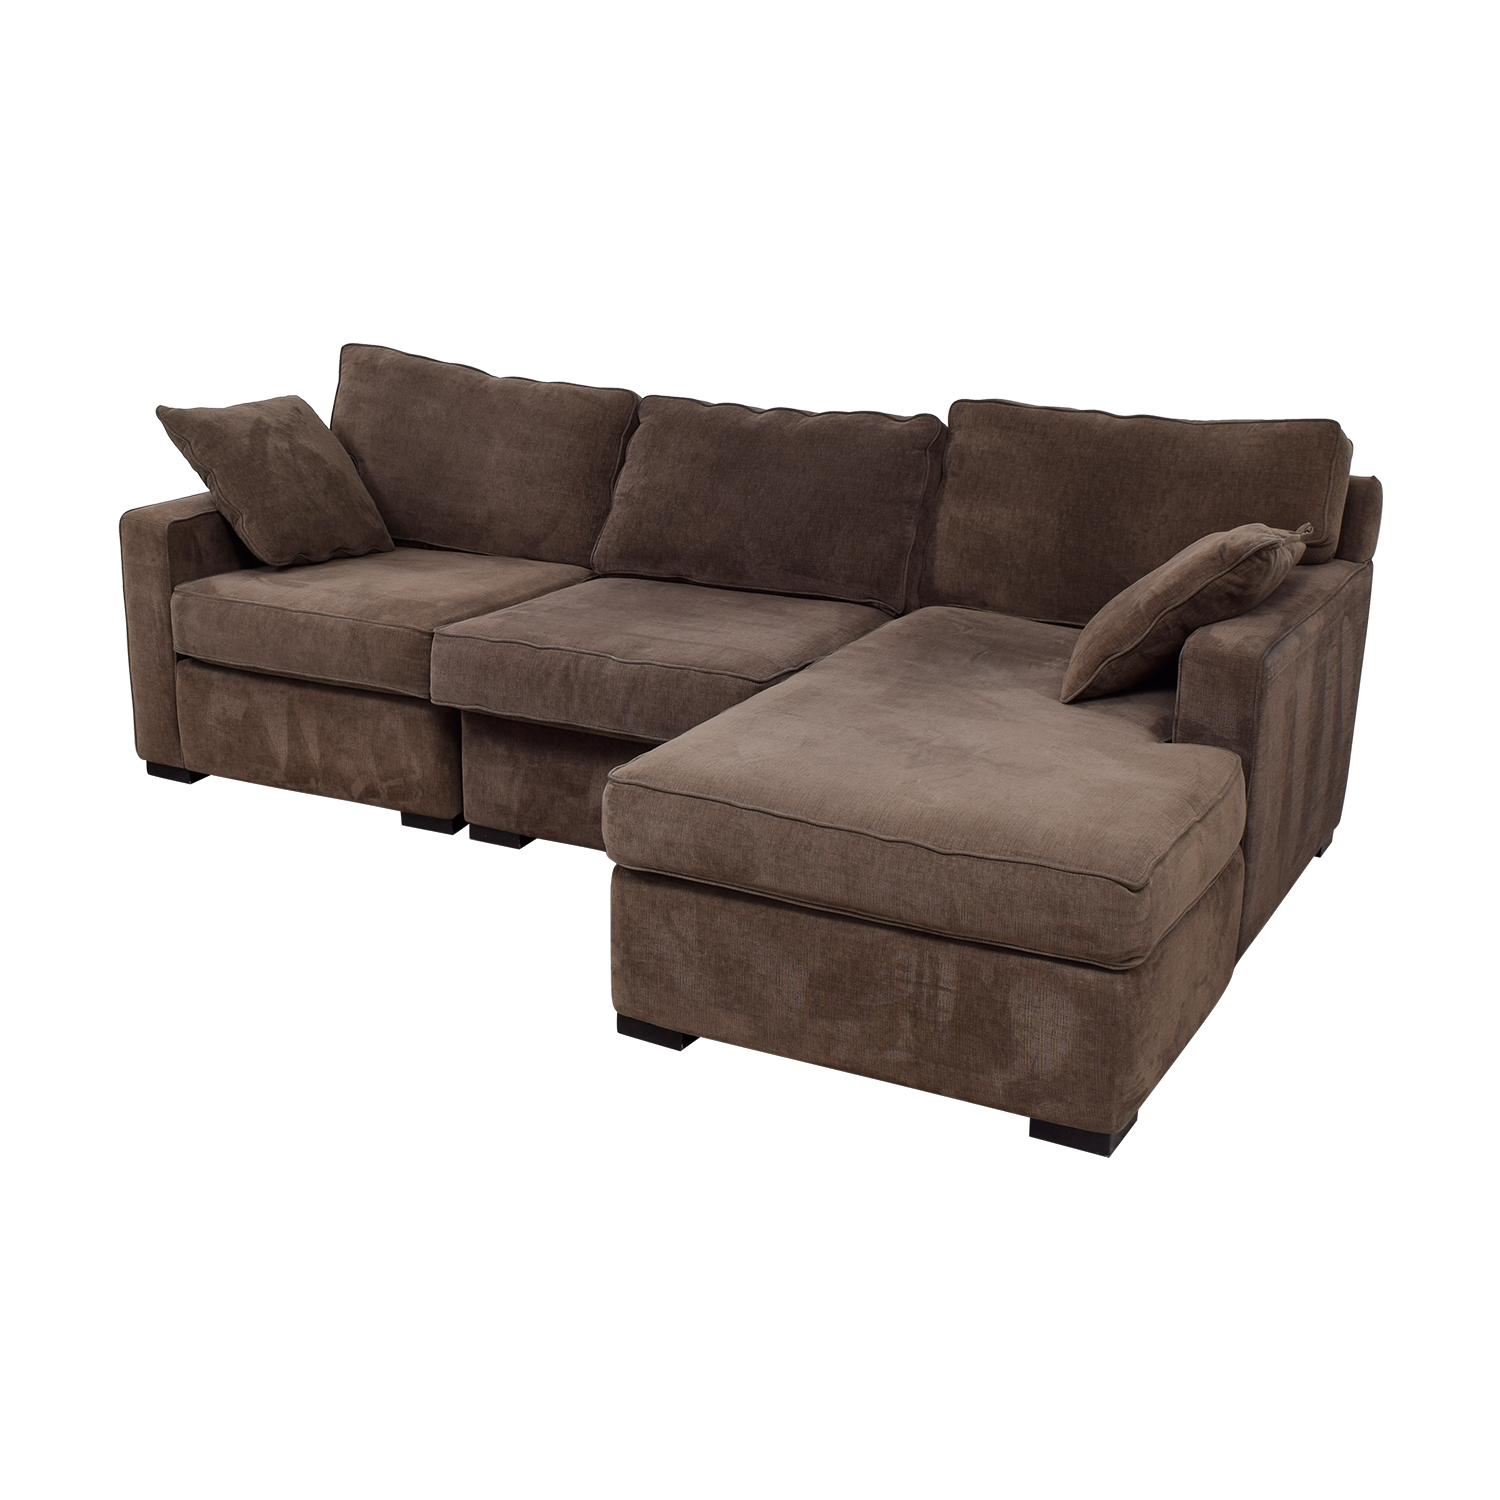 40 OFF Radley Radley Brown Chaise Sectional Sofas